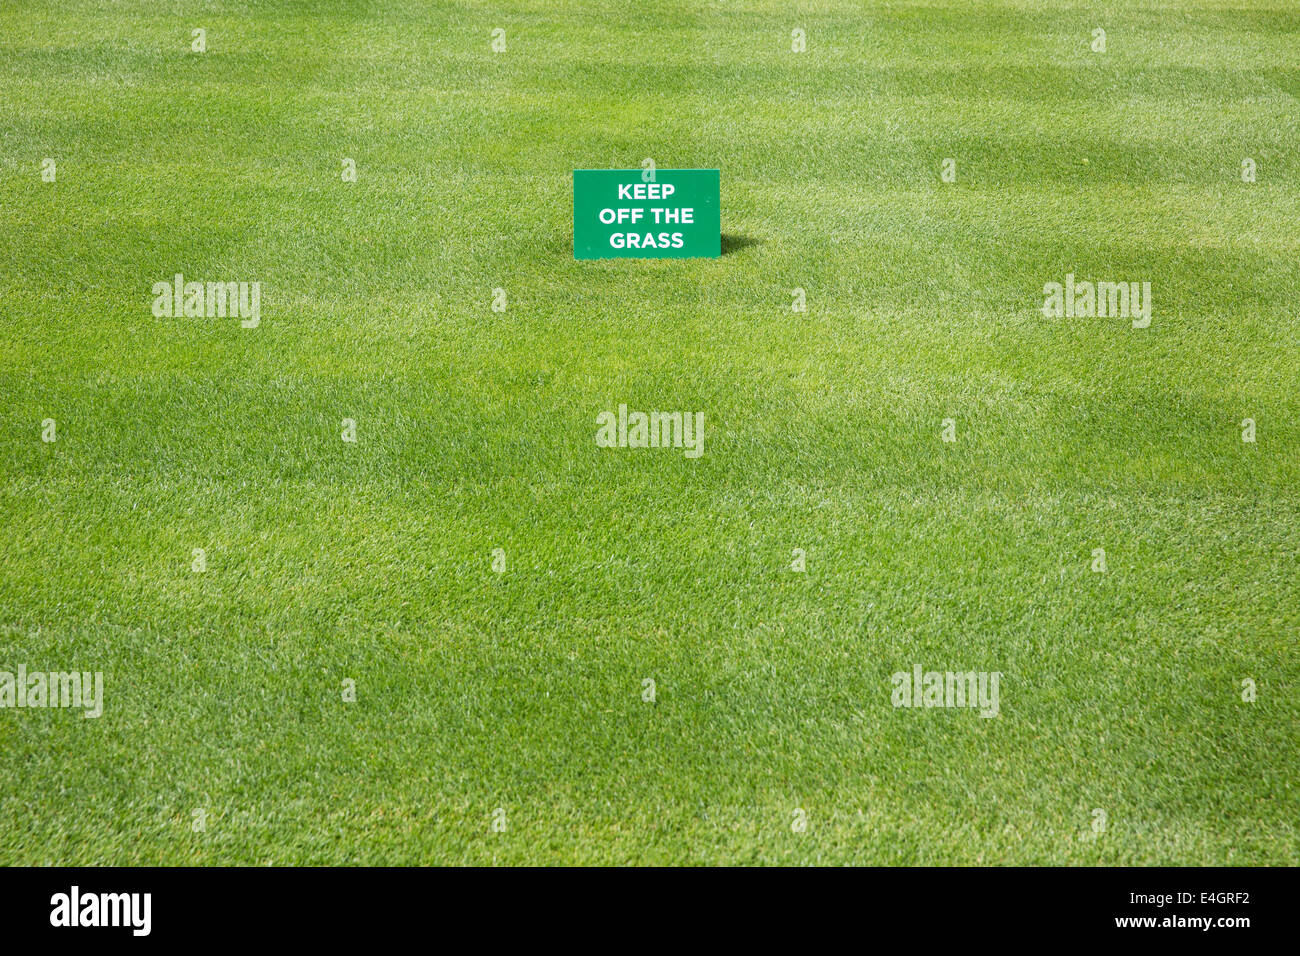 Keep off the grass sign - Stock Image